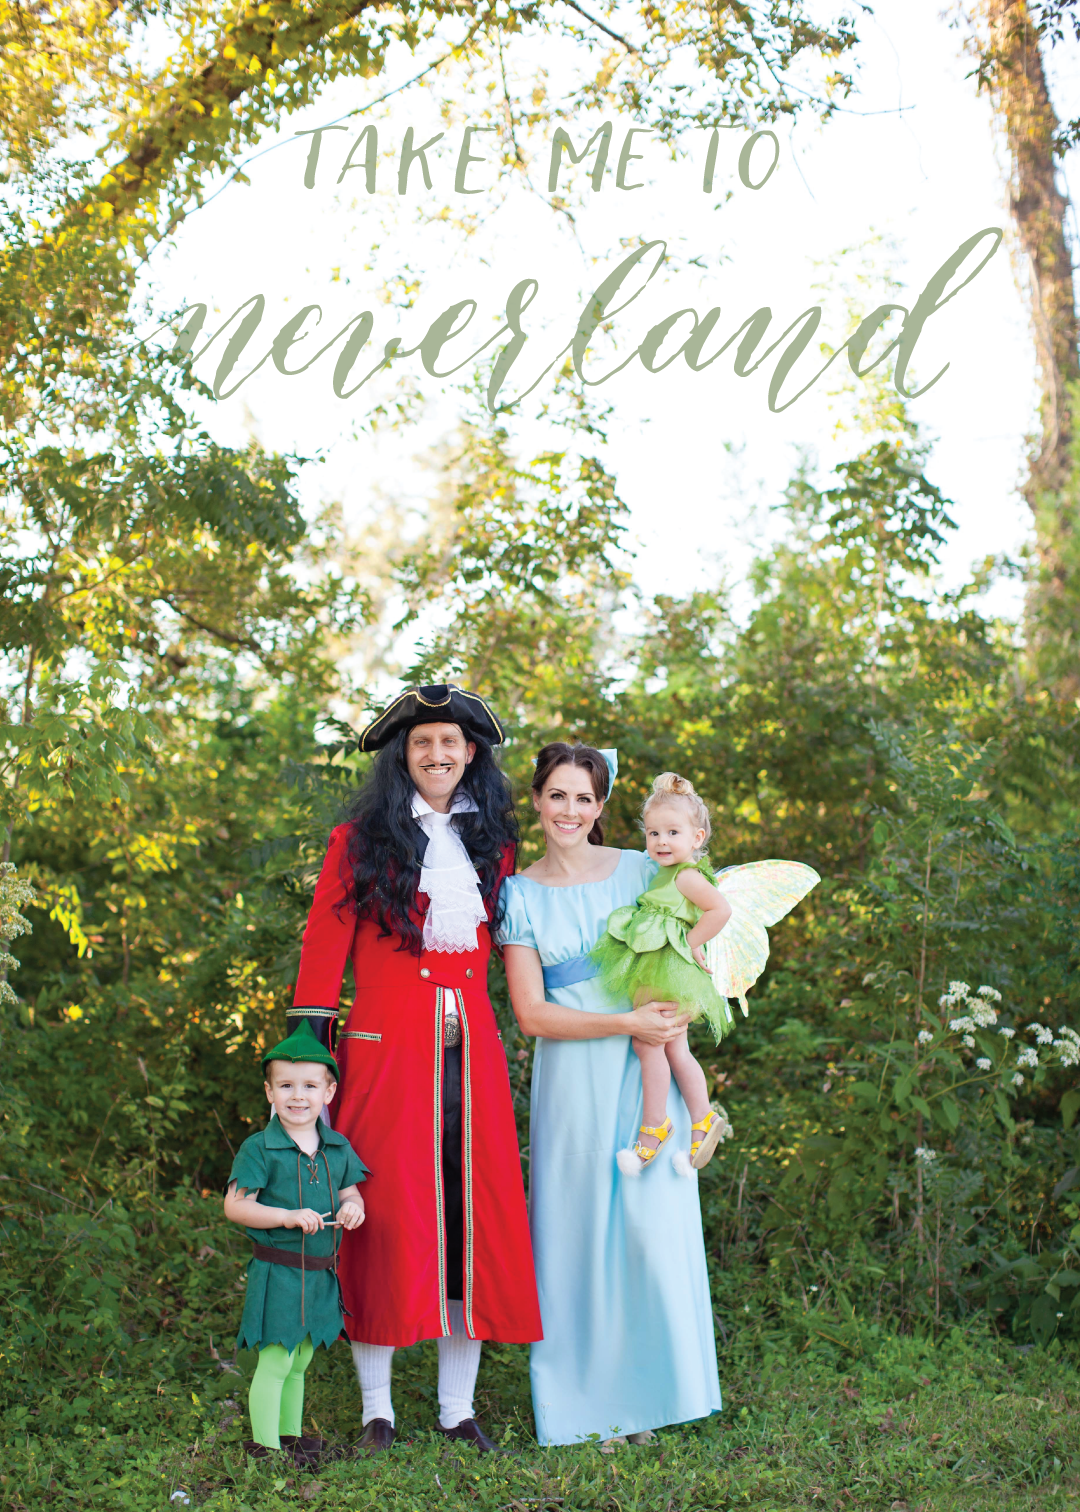 Family costume - Peter Pan, Wendy, Tink, Captain Hook, Lost Boys